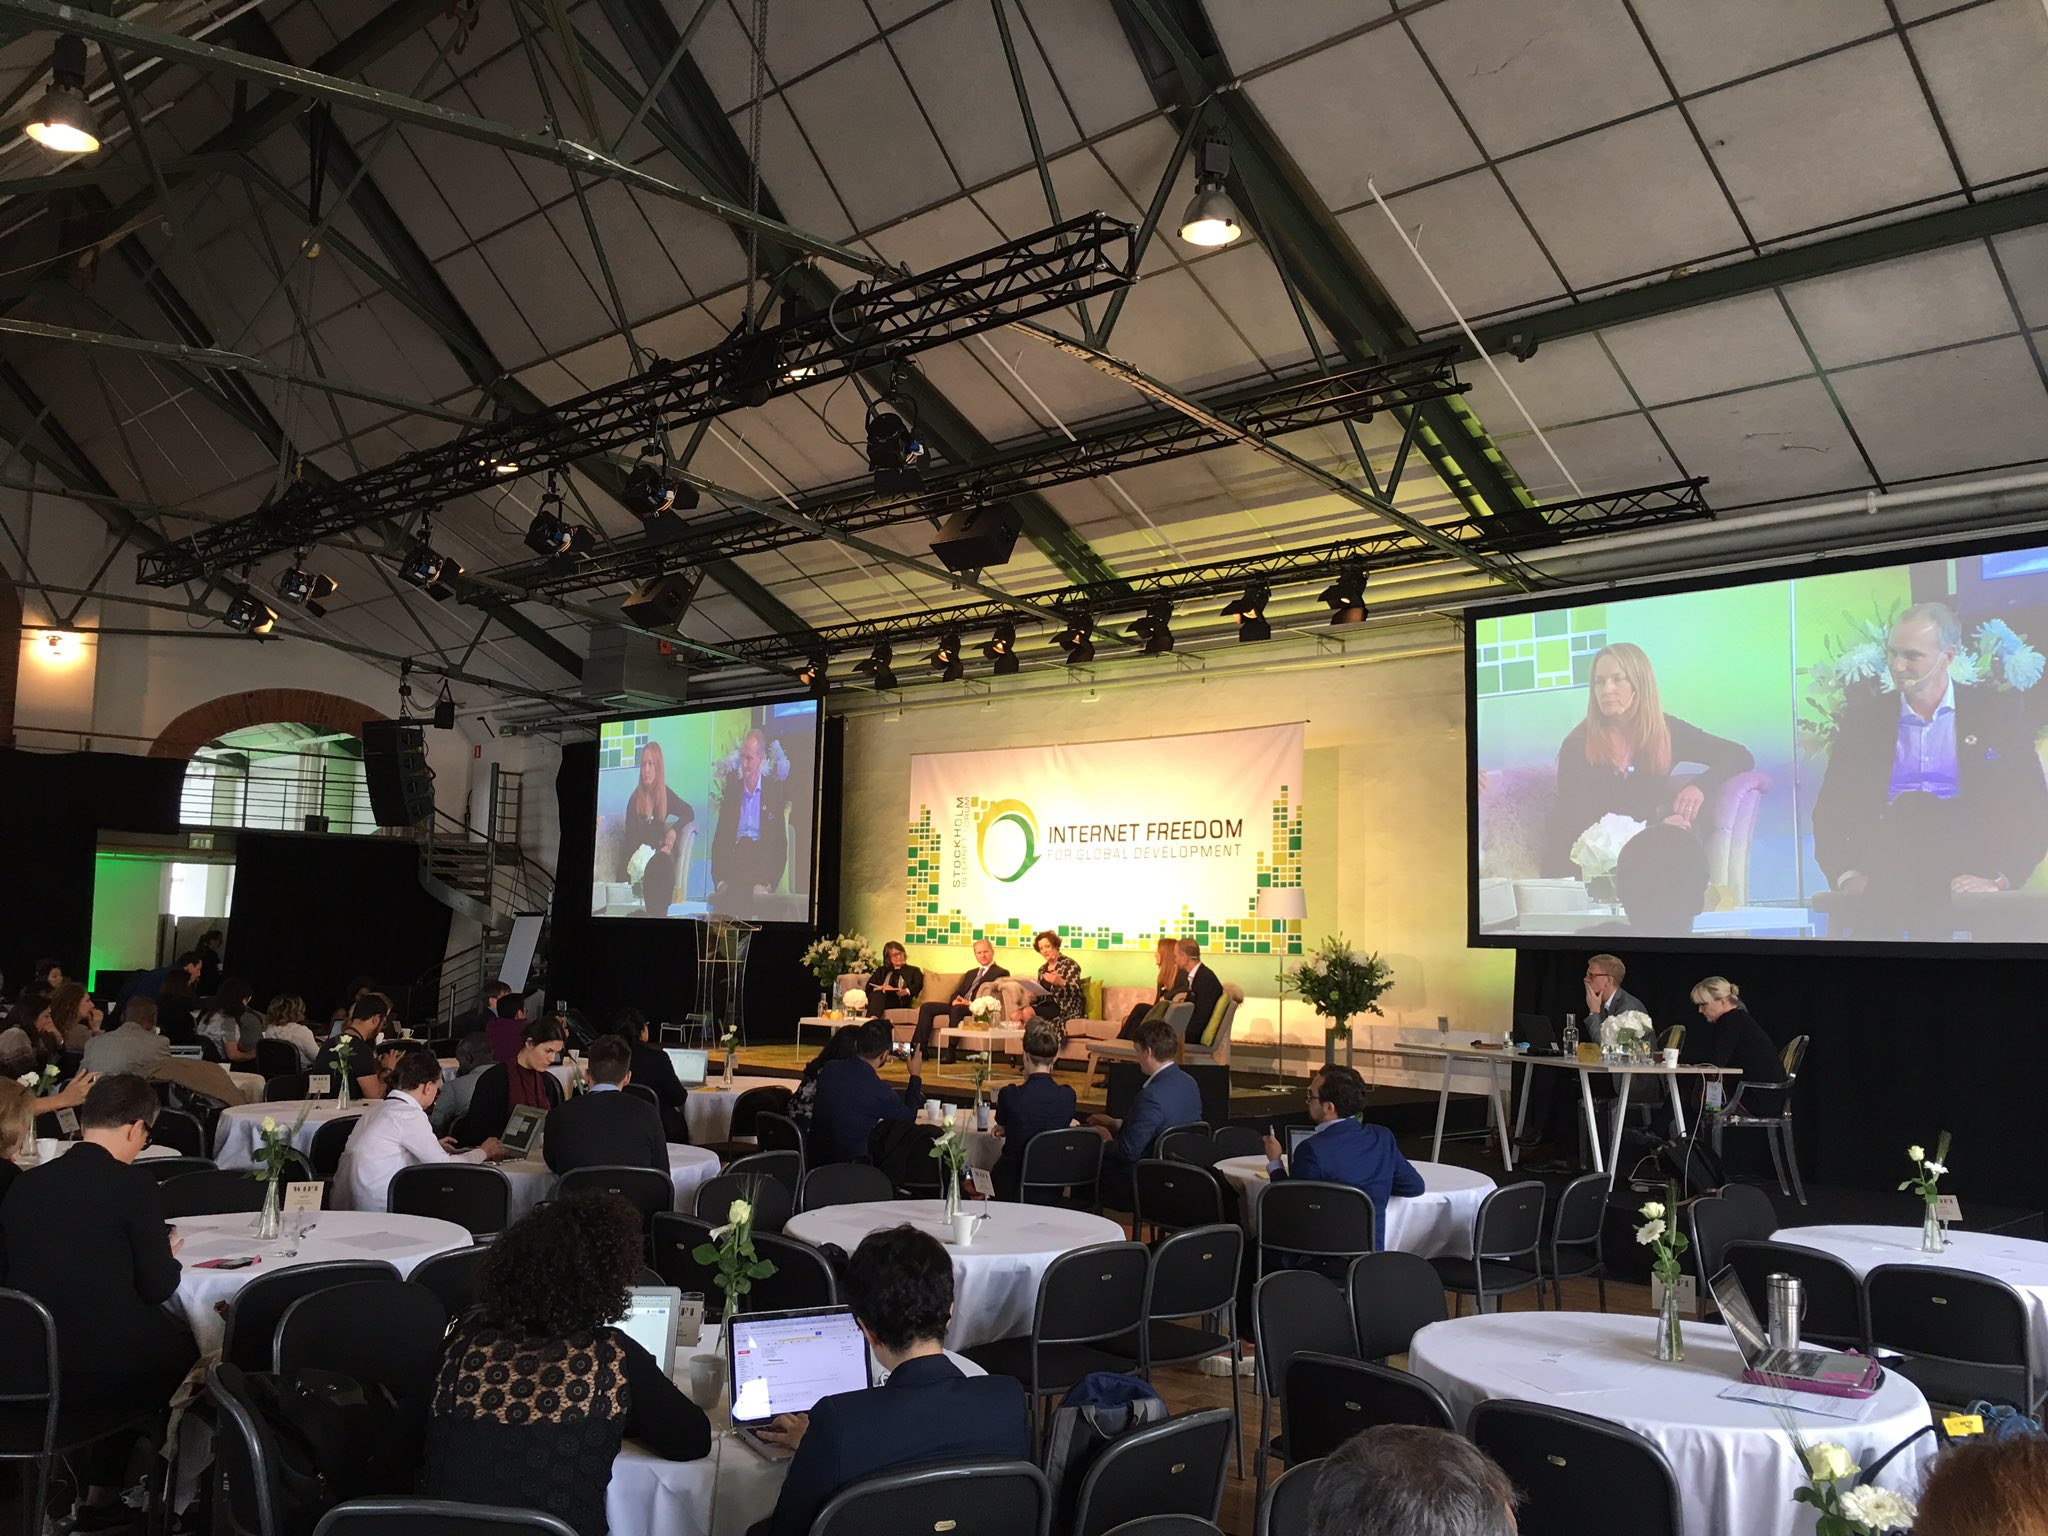 Keynote and main session #SIF17 A positive outlook: #leaveno1offline https://t.co/efYDbT4Hx9